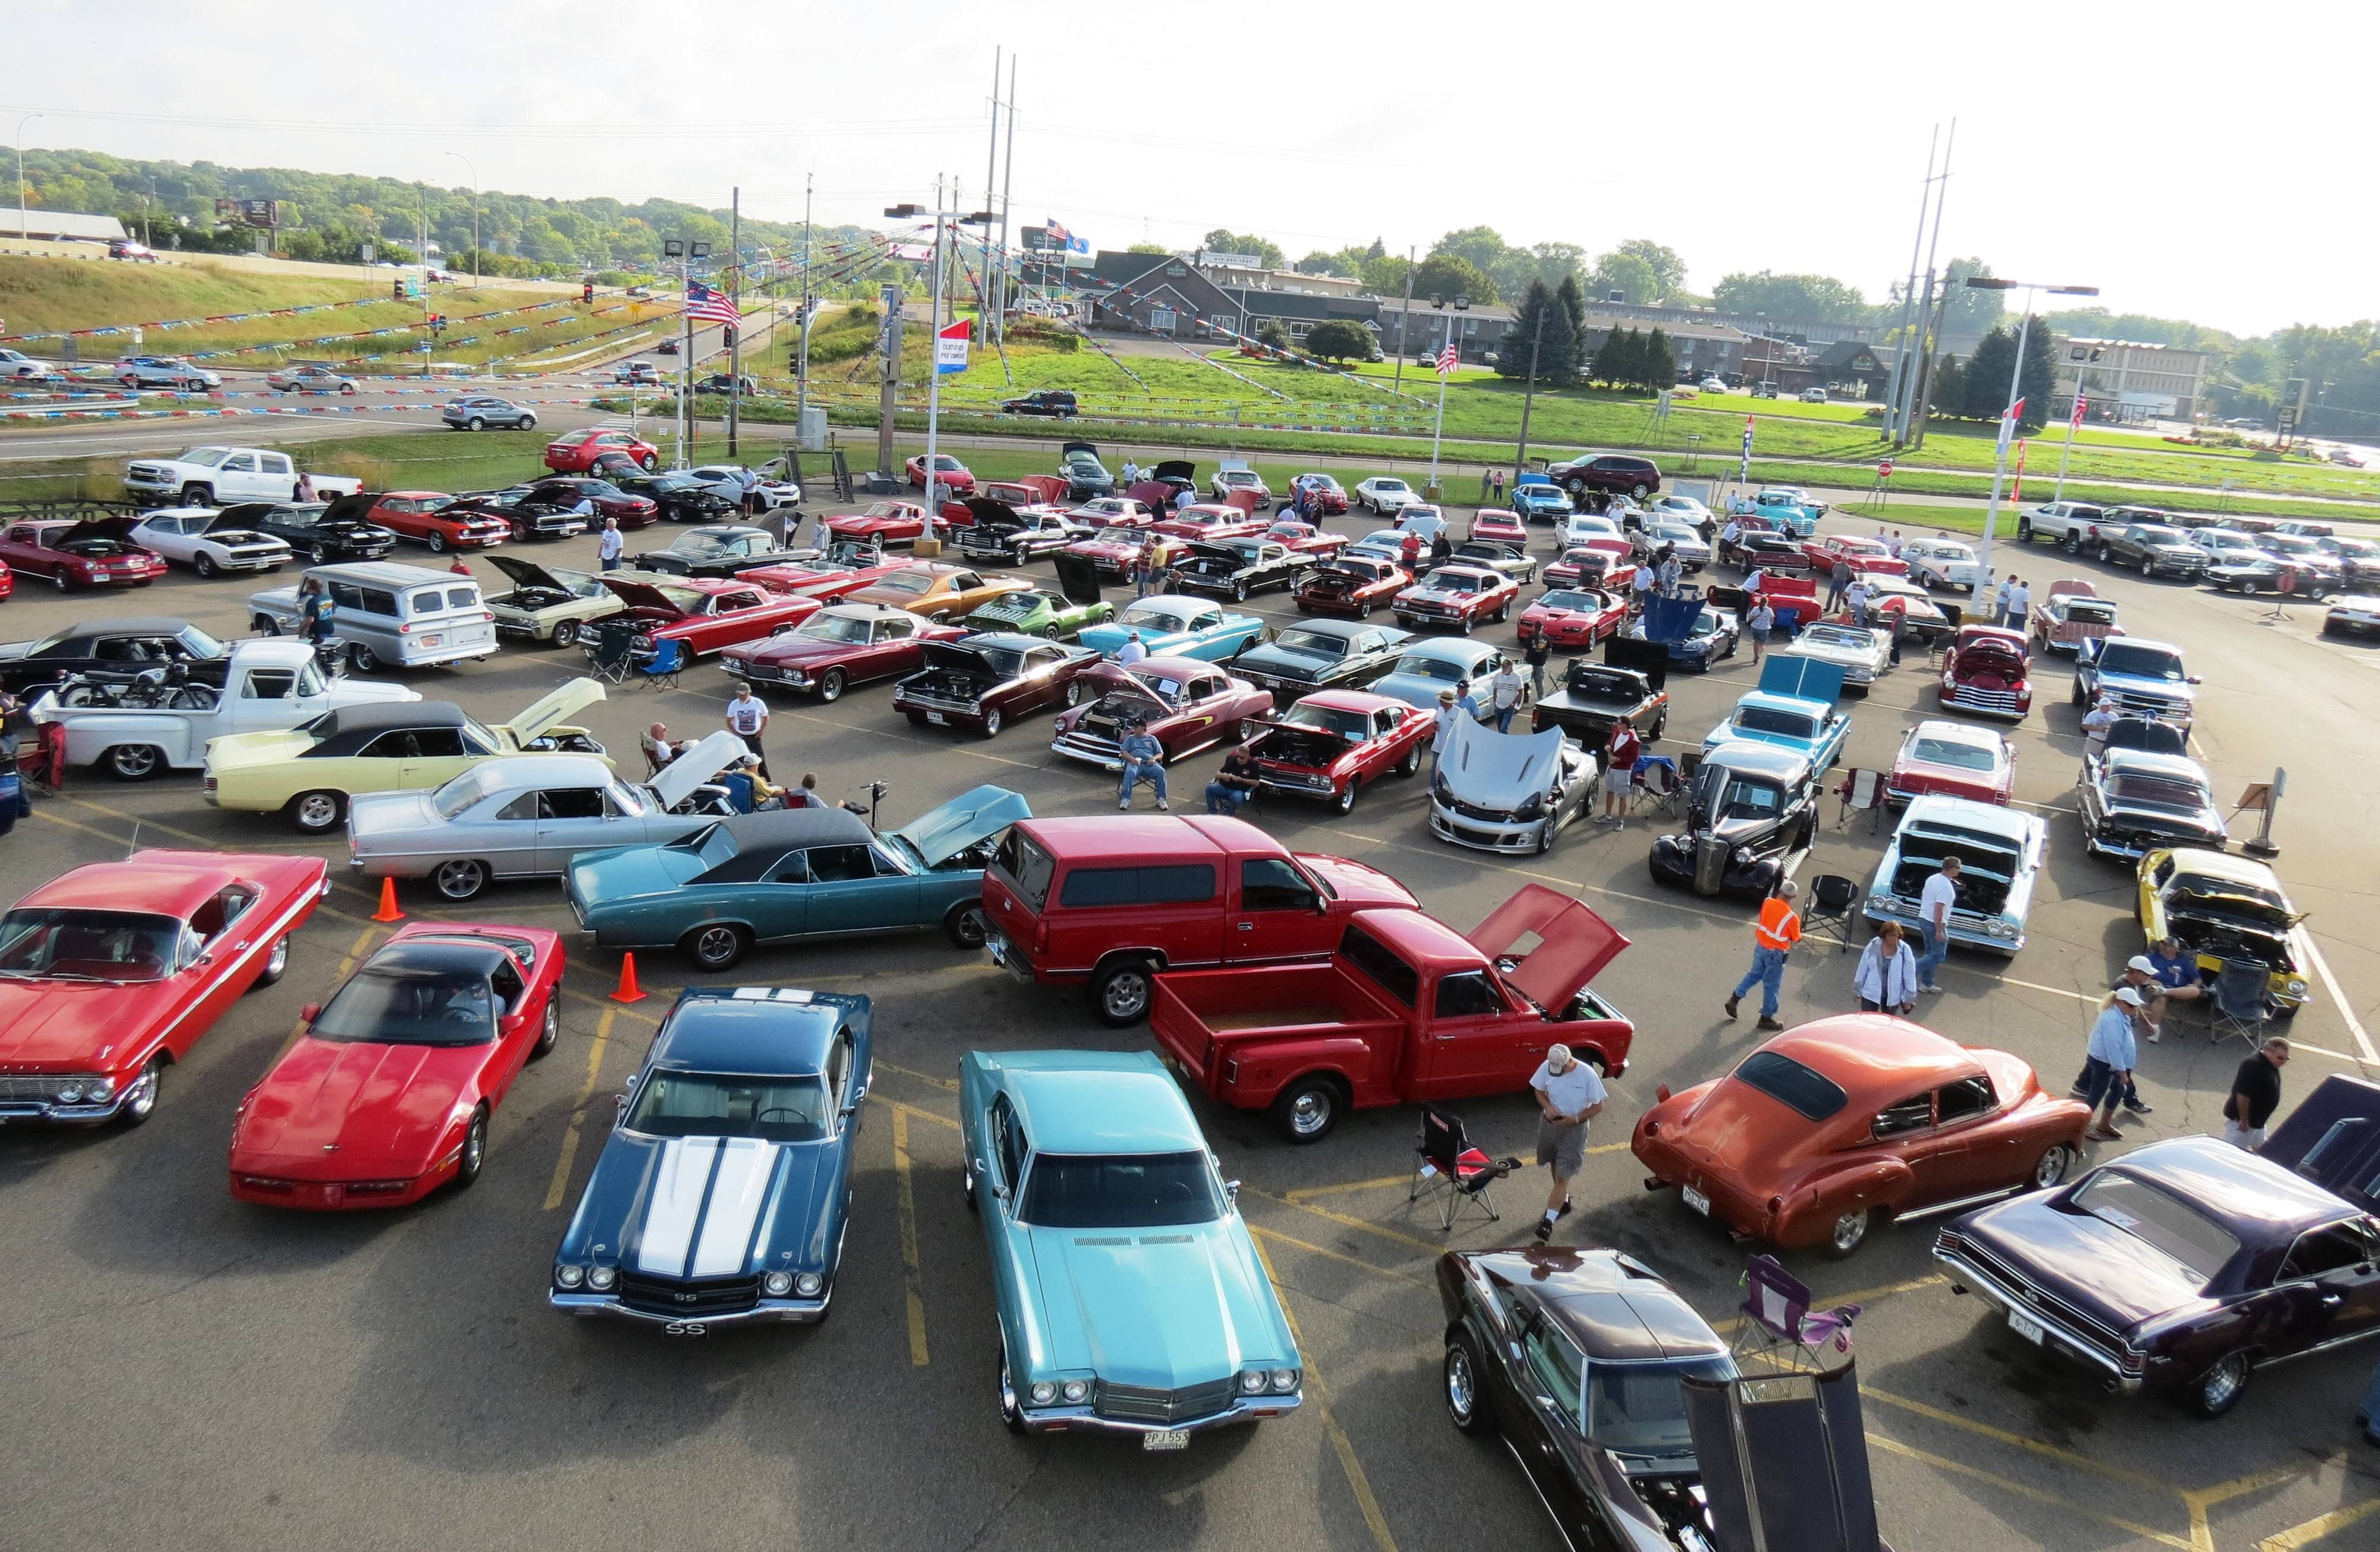 Merit Chevrolets Nd Annual ALLGM Car Show Sponsored By - Merit chevrolet car show